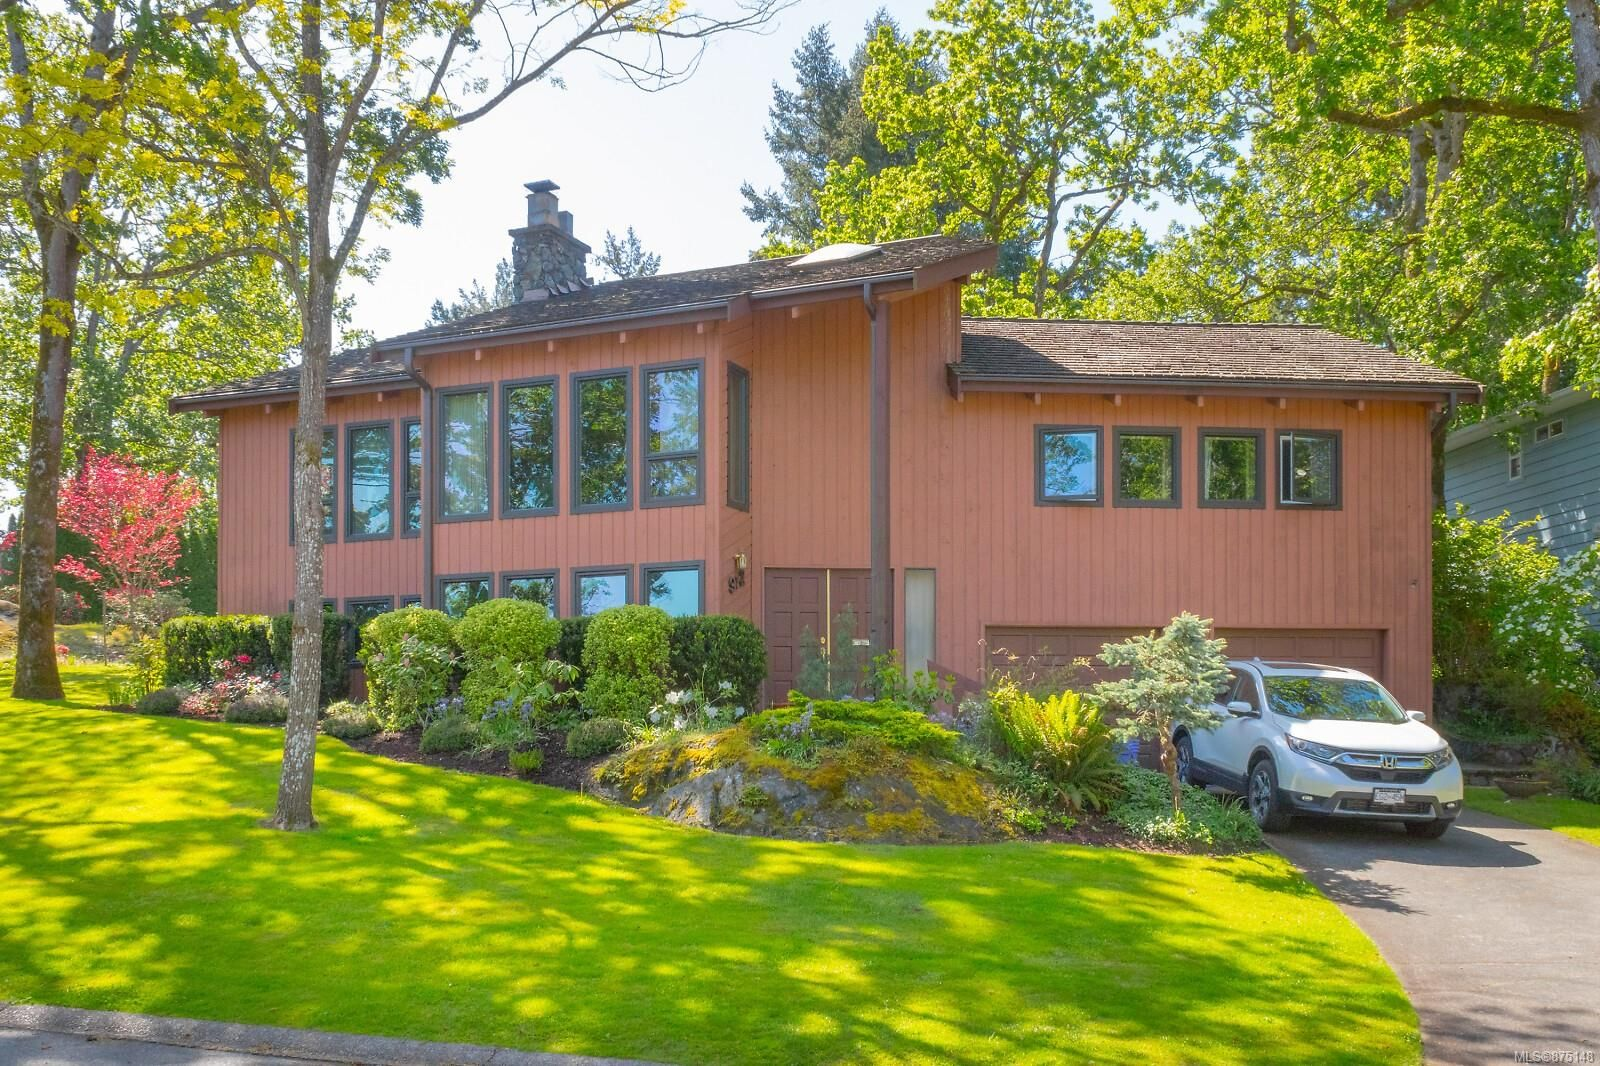 Main Photo: 912 Woodhall Dr in : SE High Quadra House for sale (Saanich East)  : MLS®# 875148